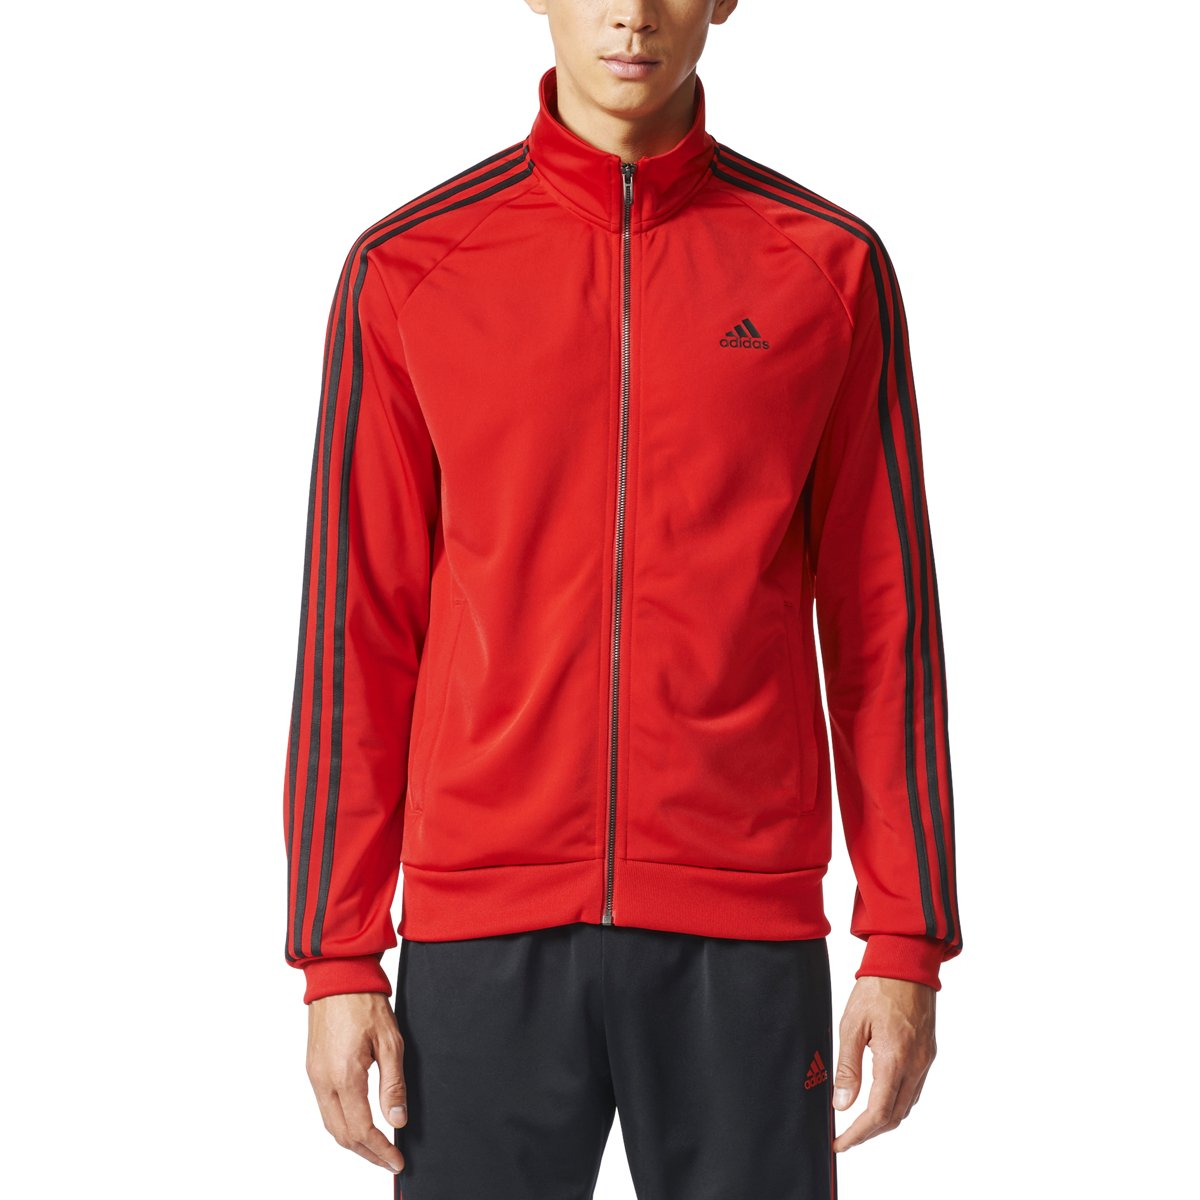 adidas Men's Essentials 3-Stripe Tricot Track Jacket, Scarlet/Black, Large by adidas